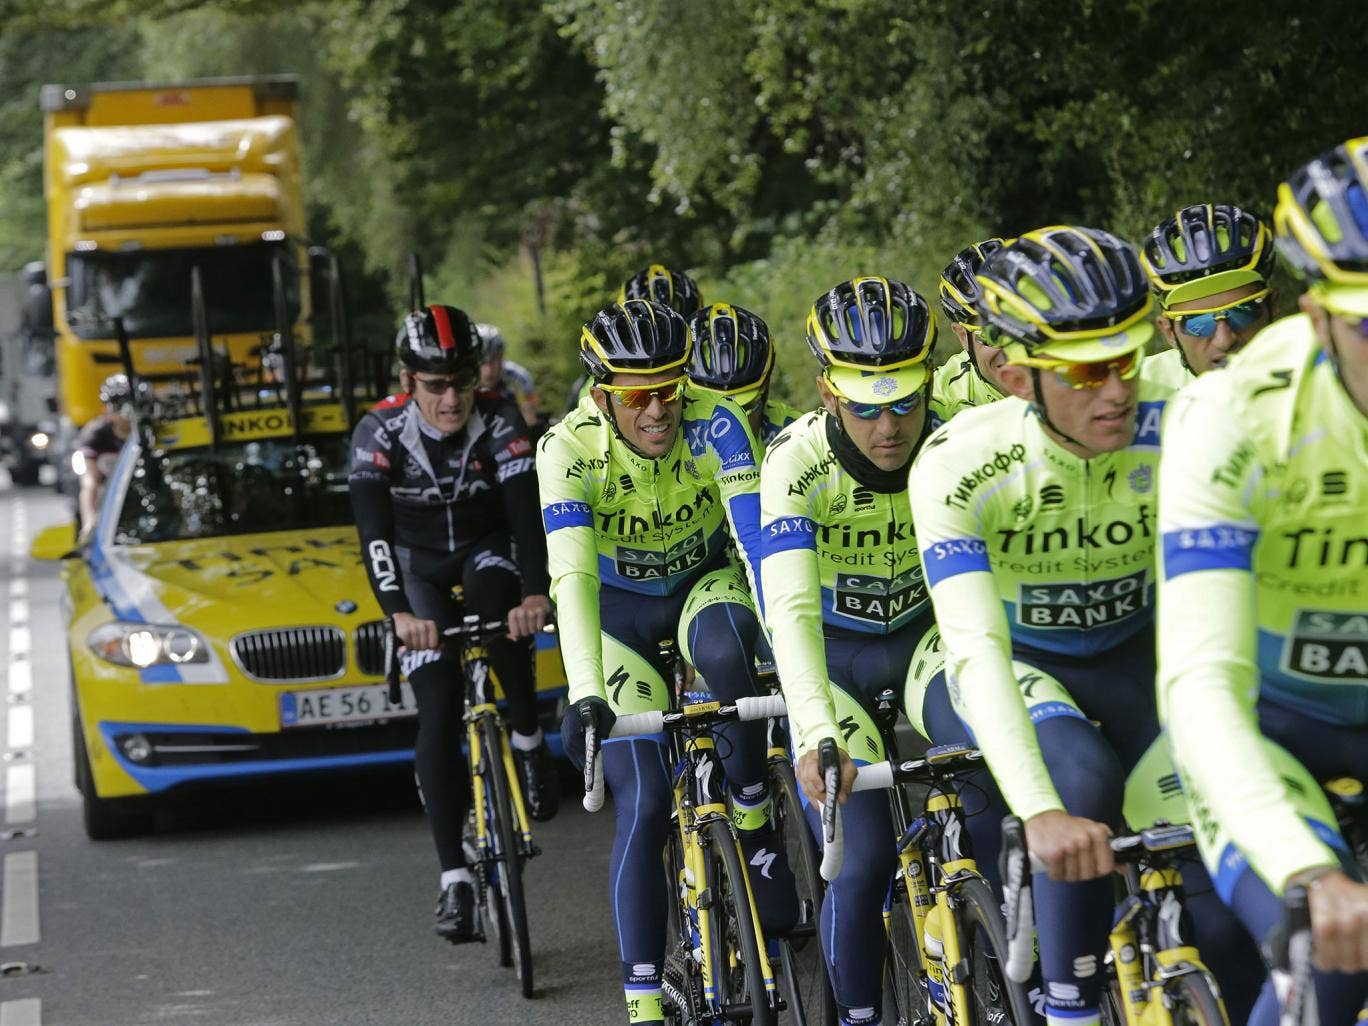 Team Tinkoff Saxo during a training session in Leeds ahead of Saturday's start of the Tour de France